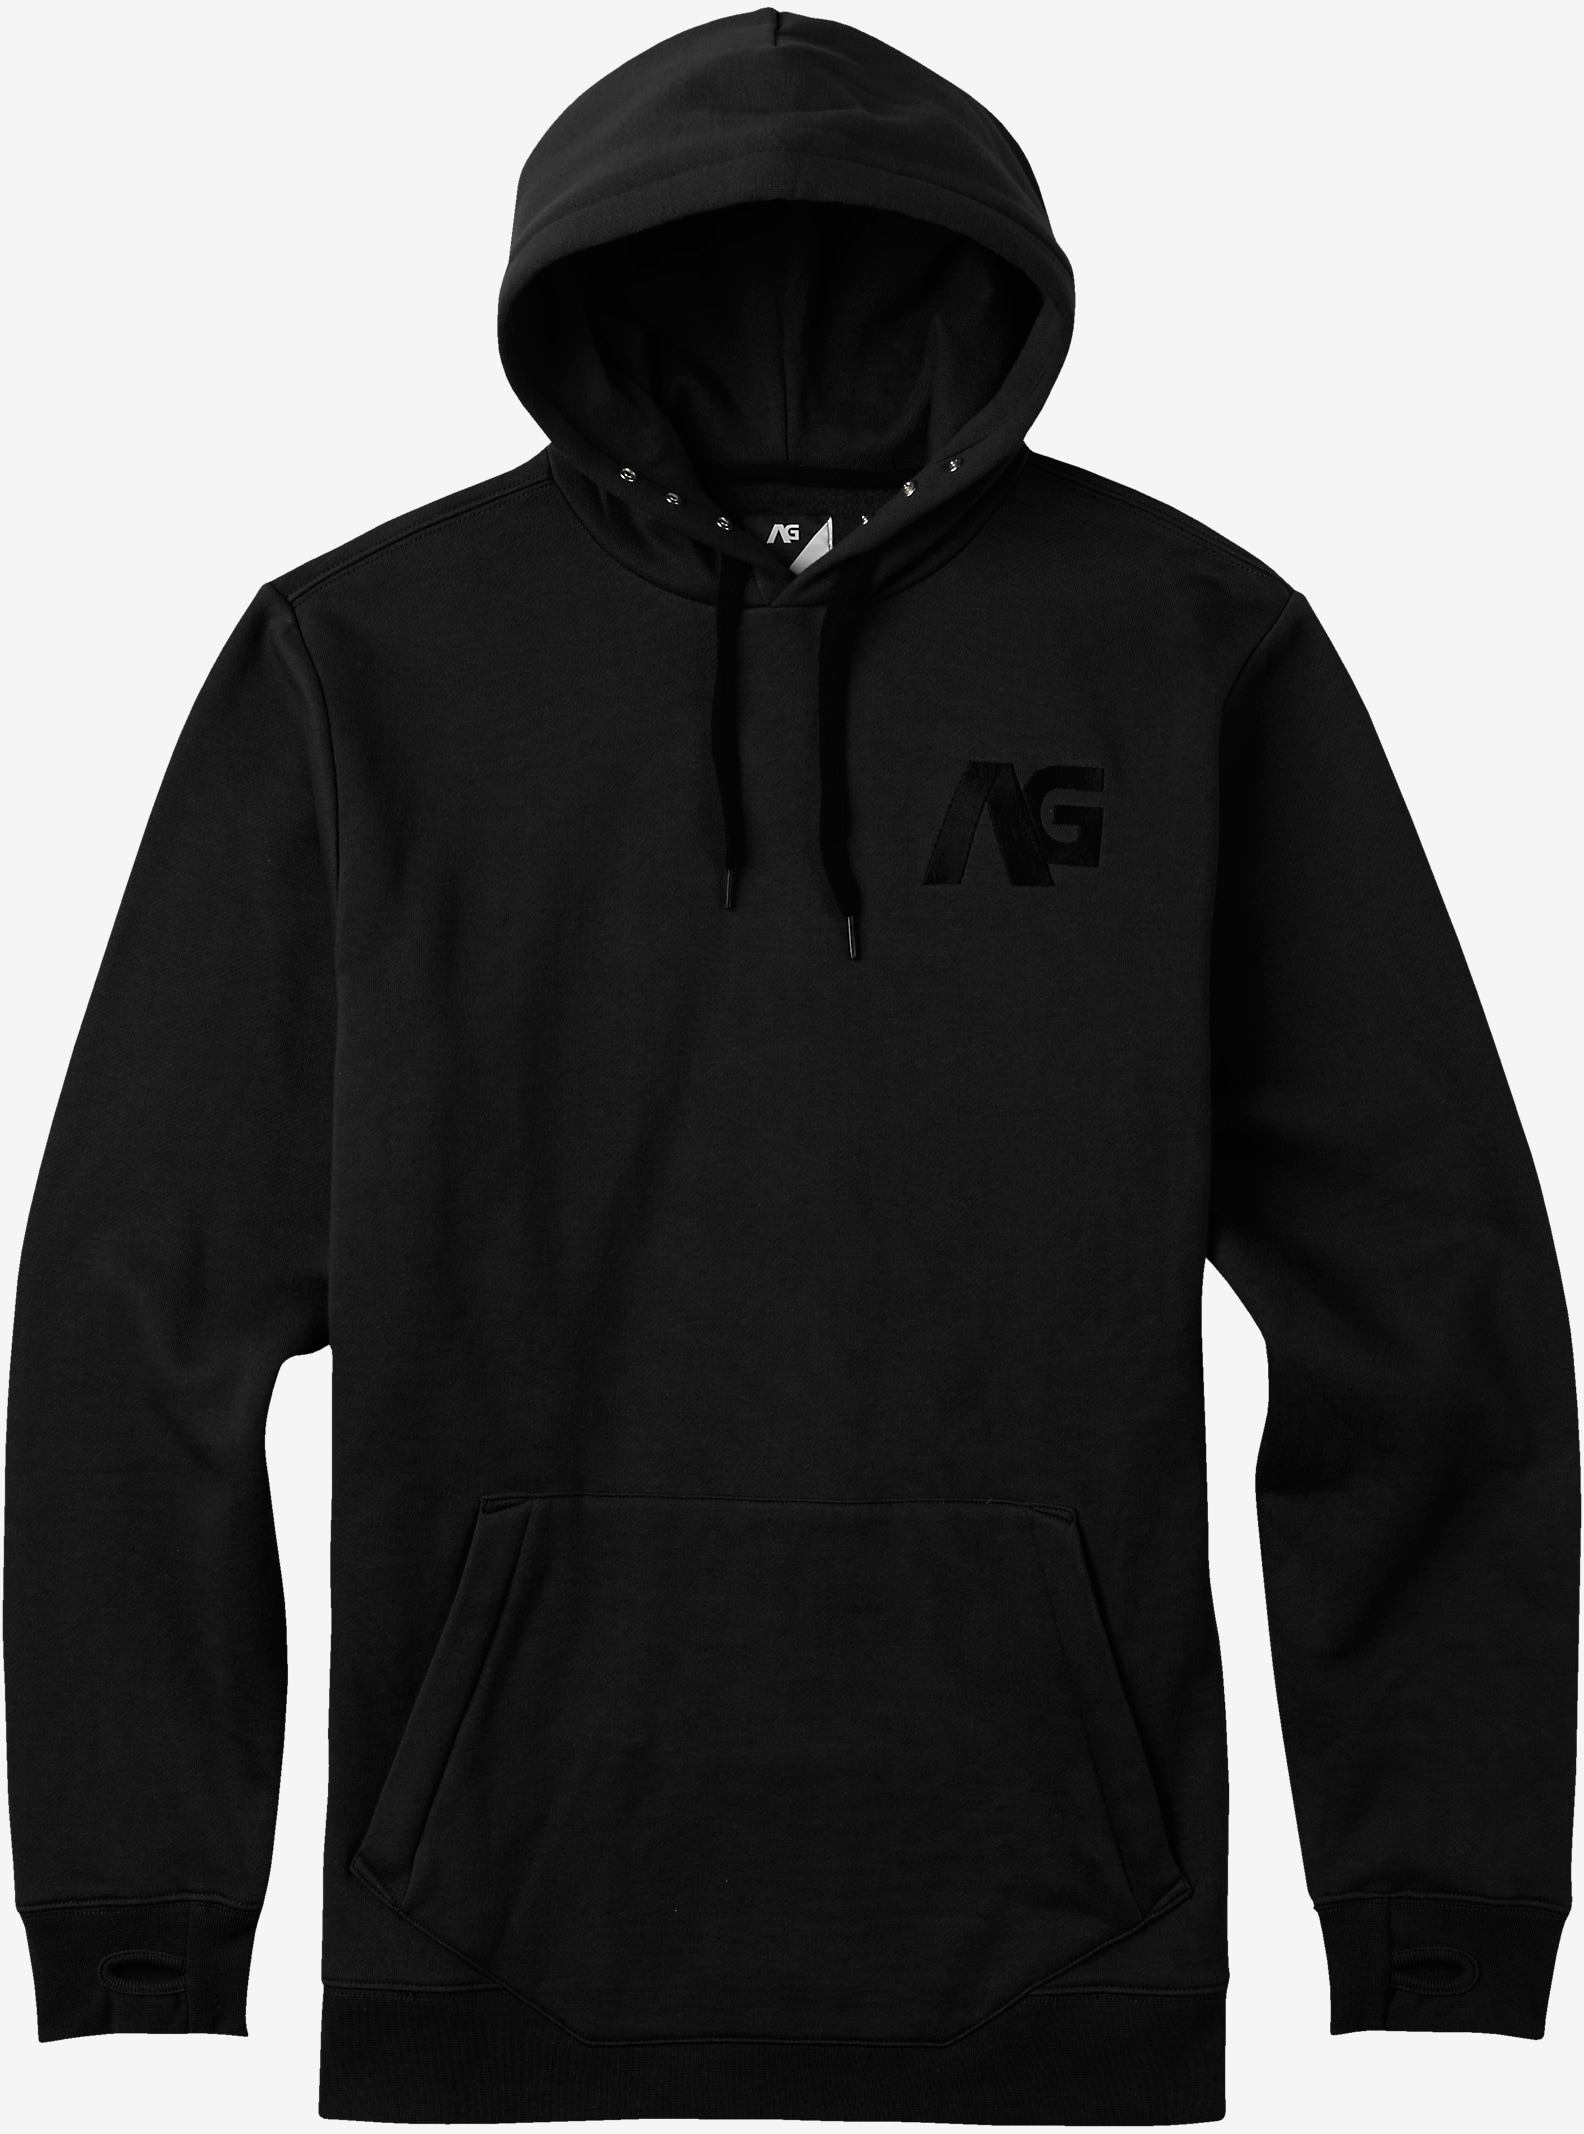 Analog Crux Hoodie shown in True Black